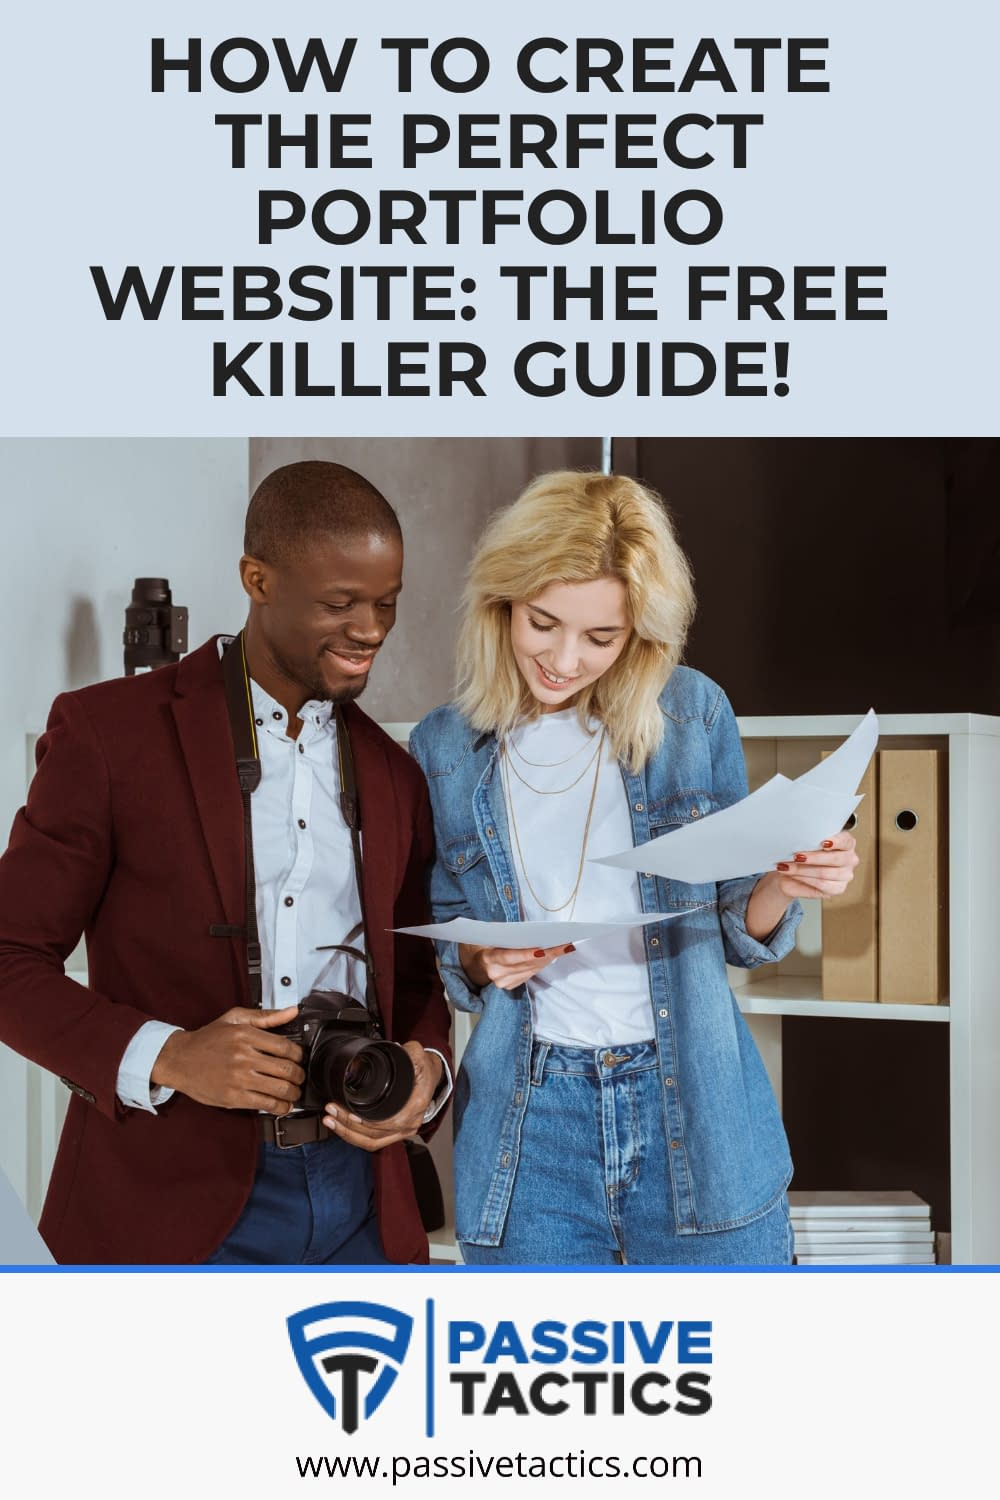 How To Create An Online Portfolio Website: The Free Killer Guide!